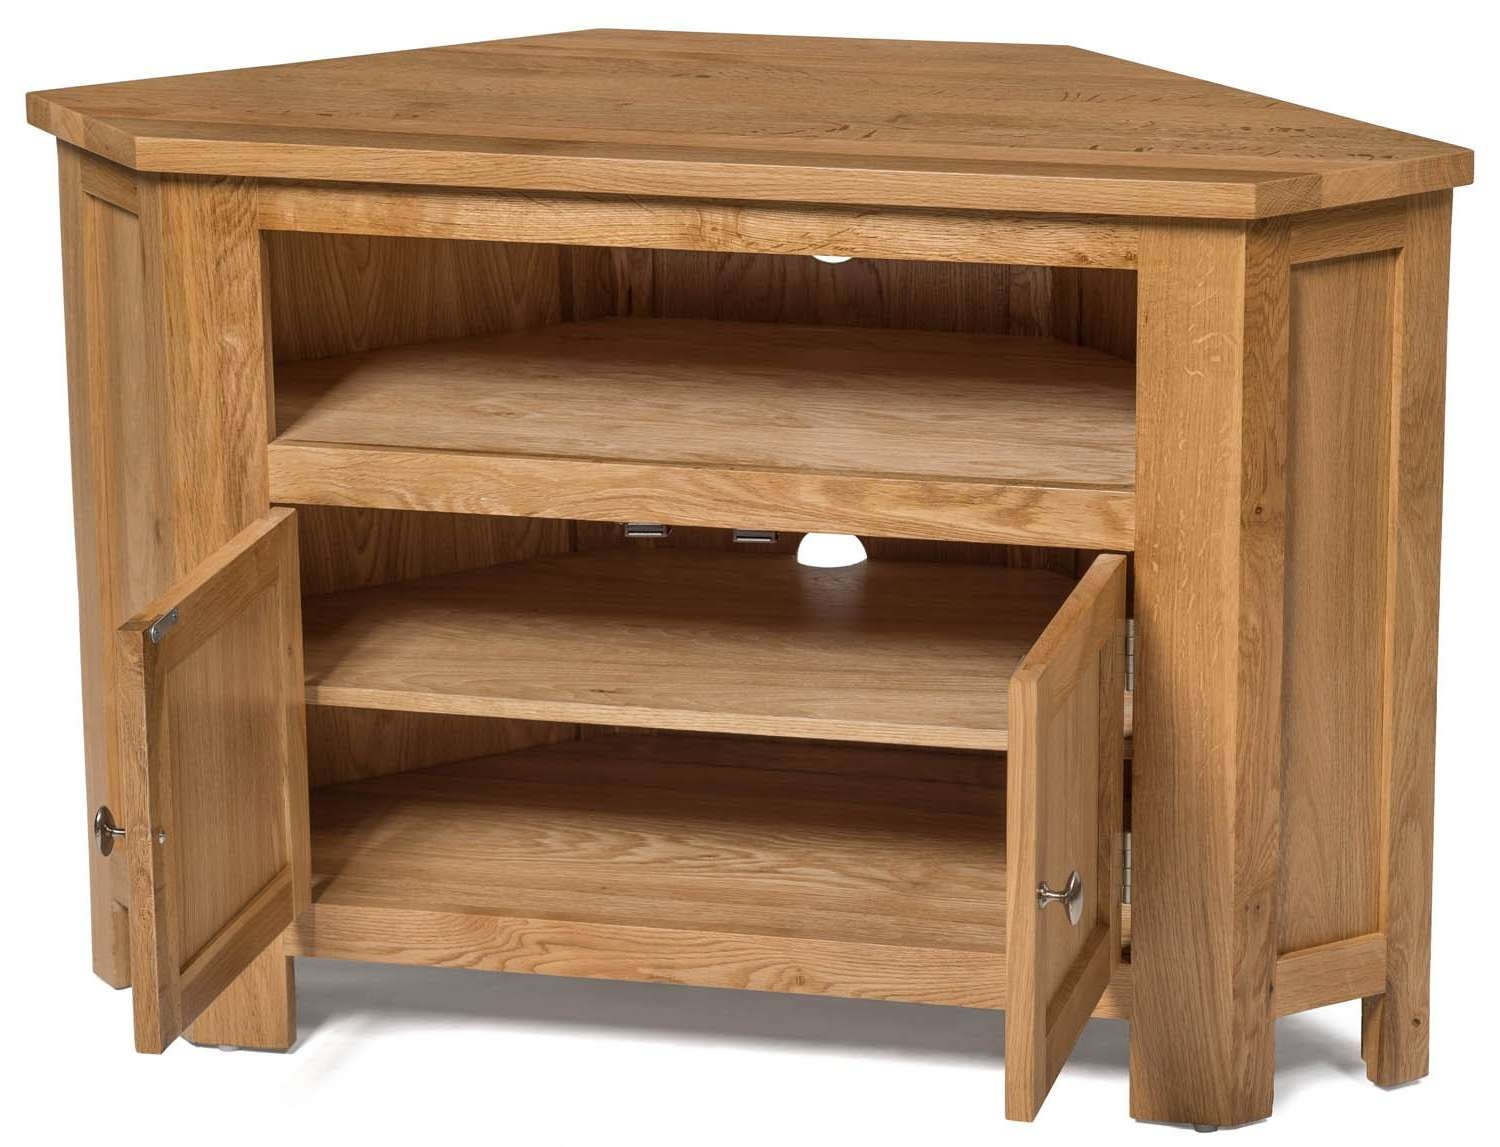 Waverly Oak 2 Door Corner Tv Stand Unit | Hallowood With Light Oak Corner Tv Stands (View 20 of 20)